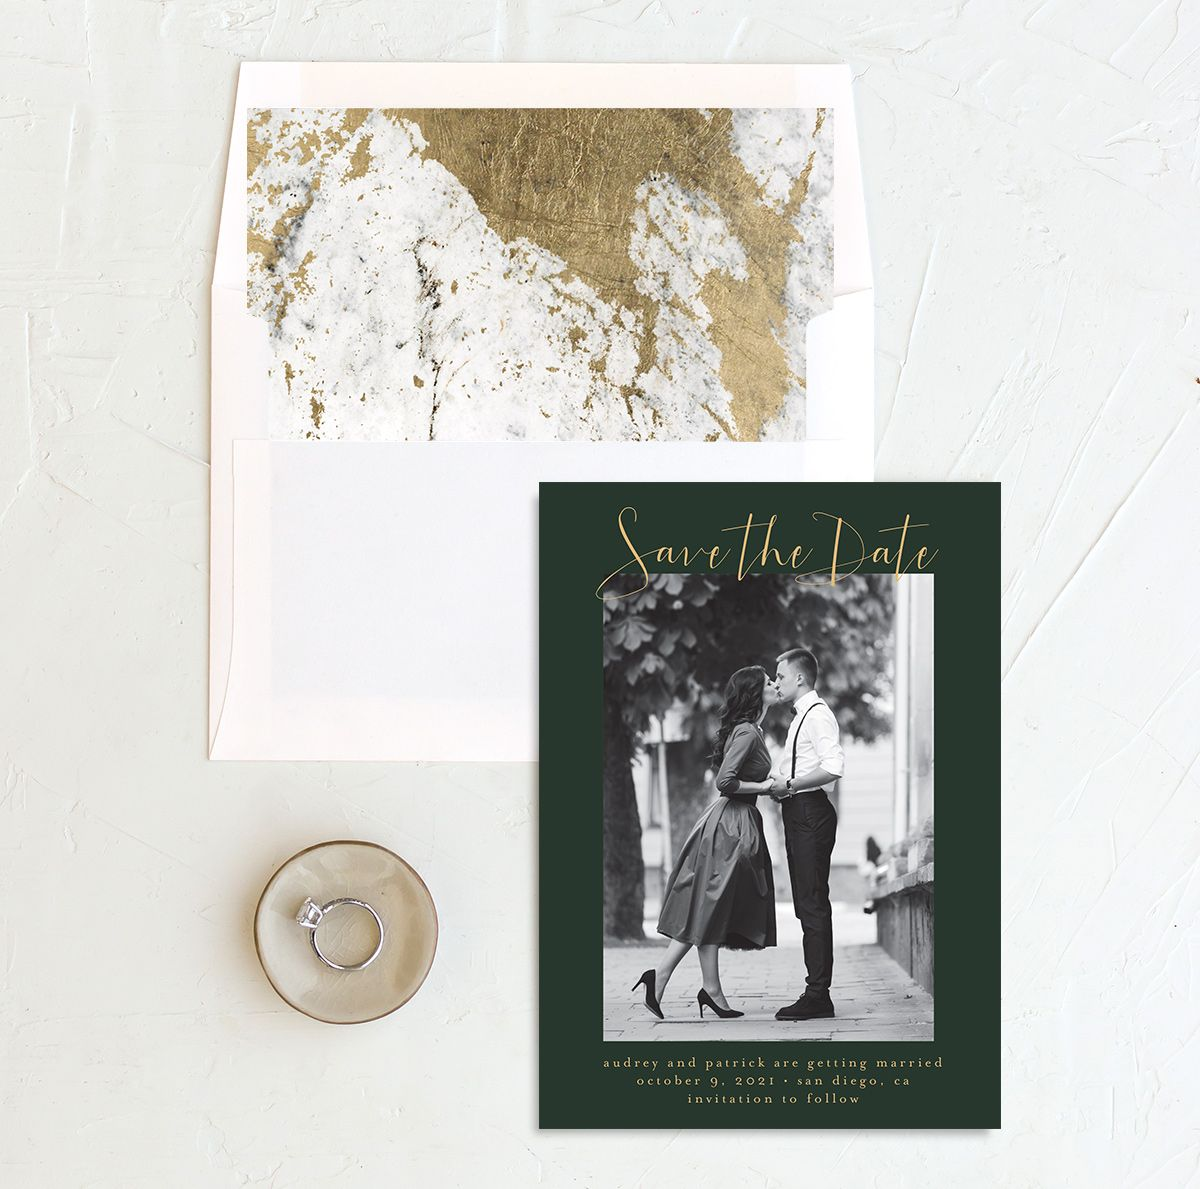 Marble and Gold photo save the date with liner in green